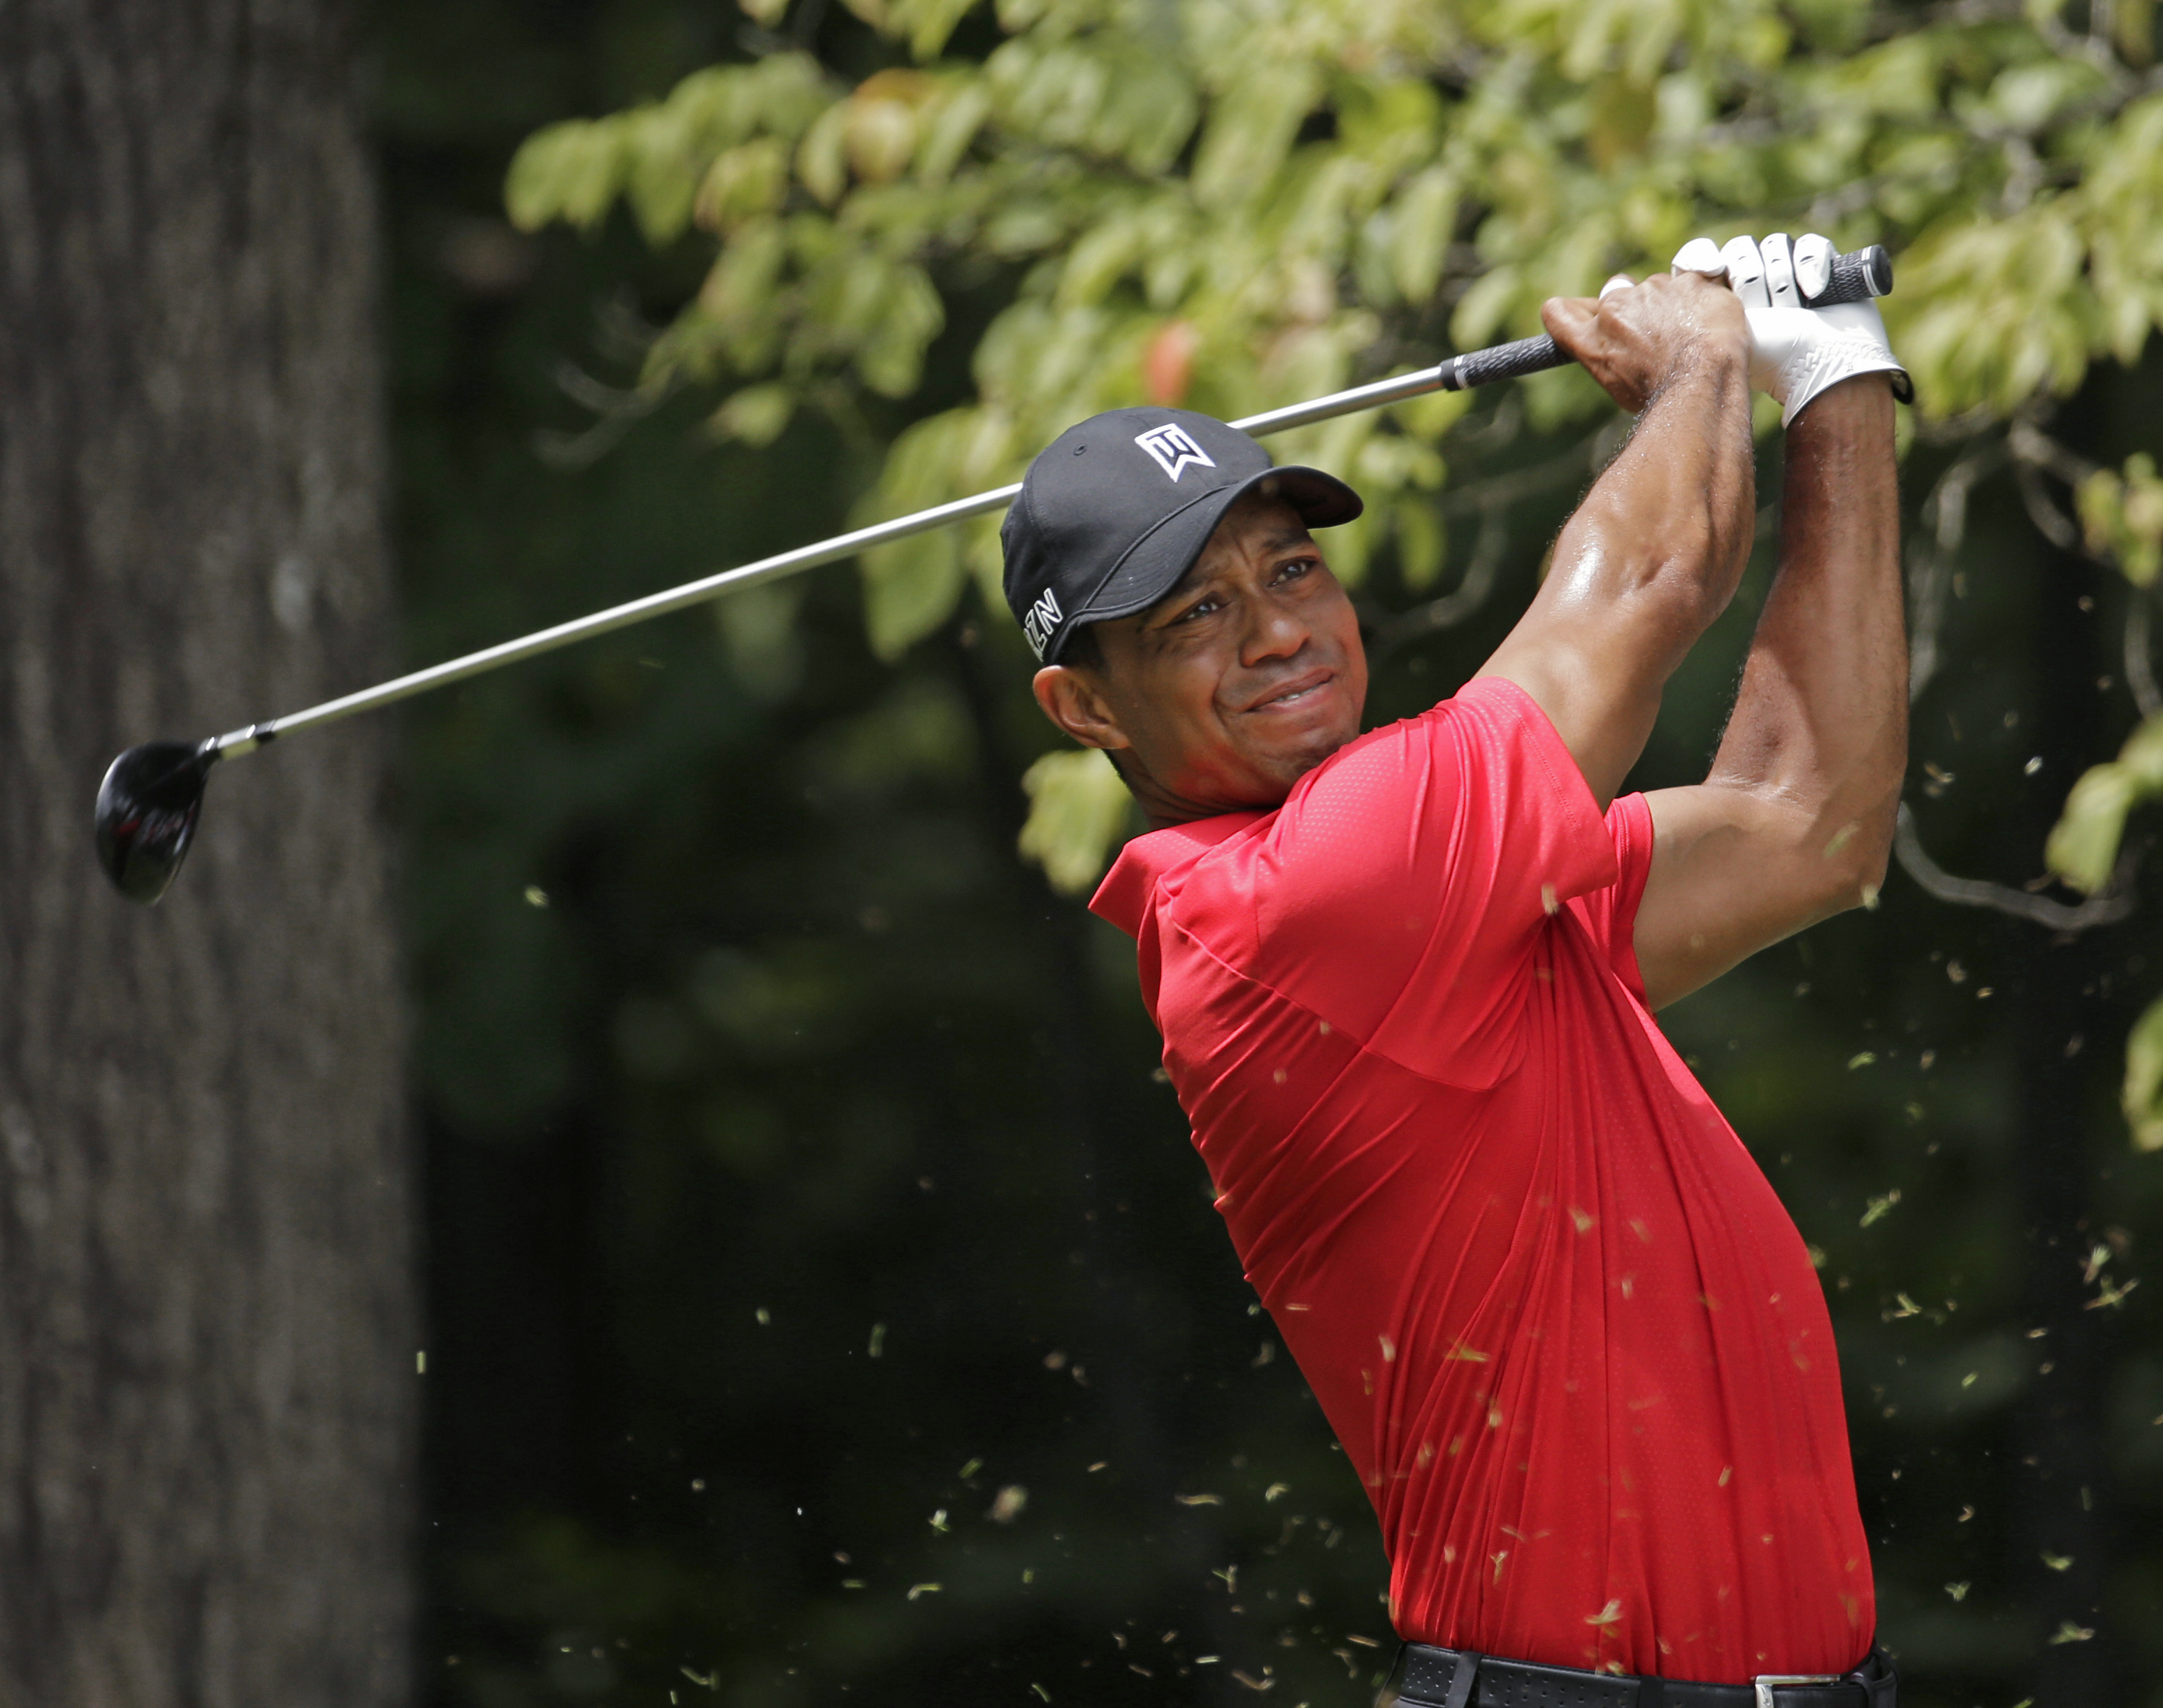 On the GOLF.com podcast, Shane Ryan and Peter Bukowski discuss the reaction to Tiger Woods if he ever returns to form.